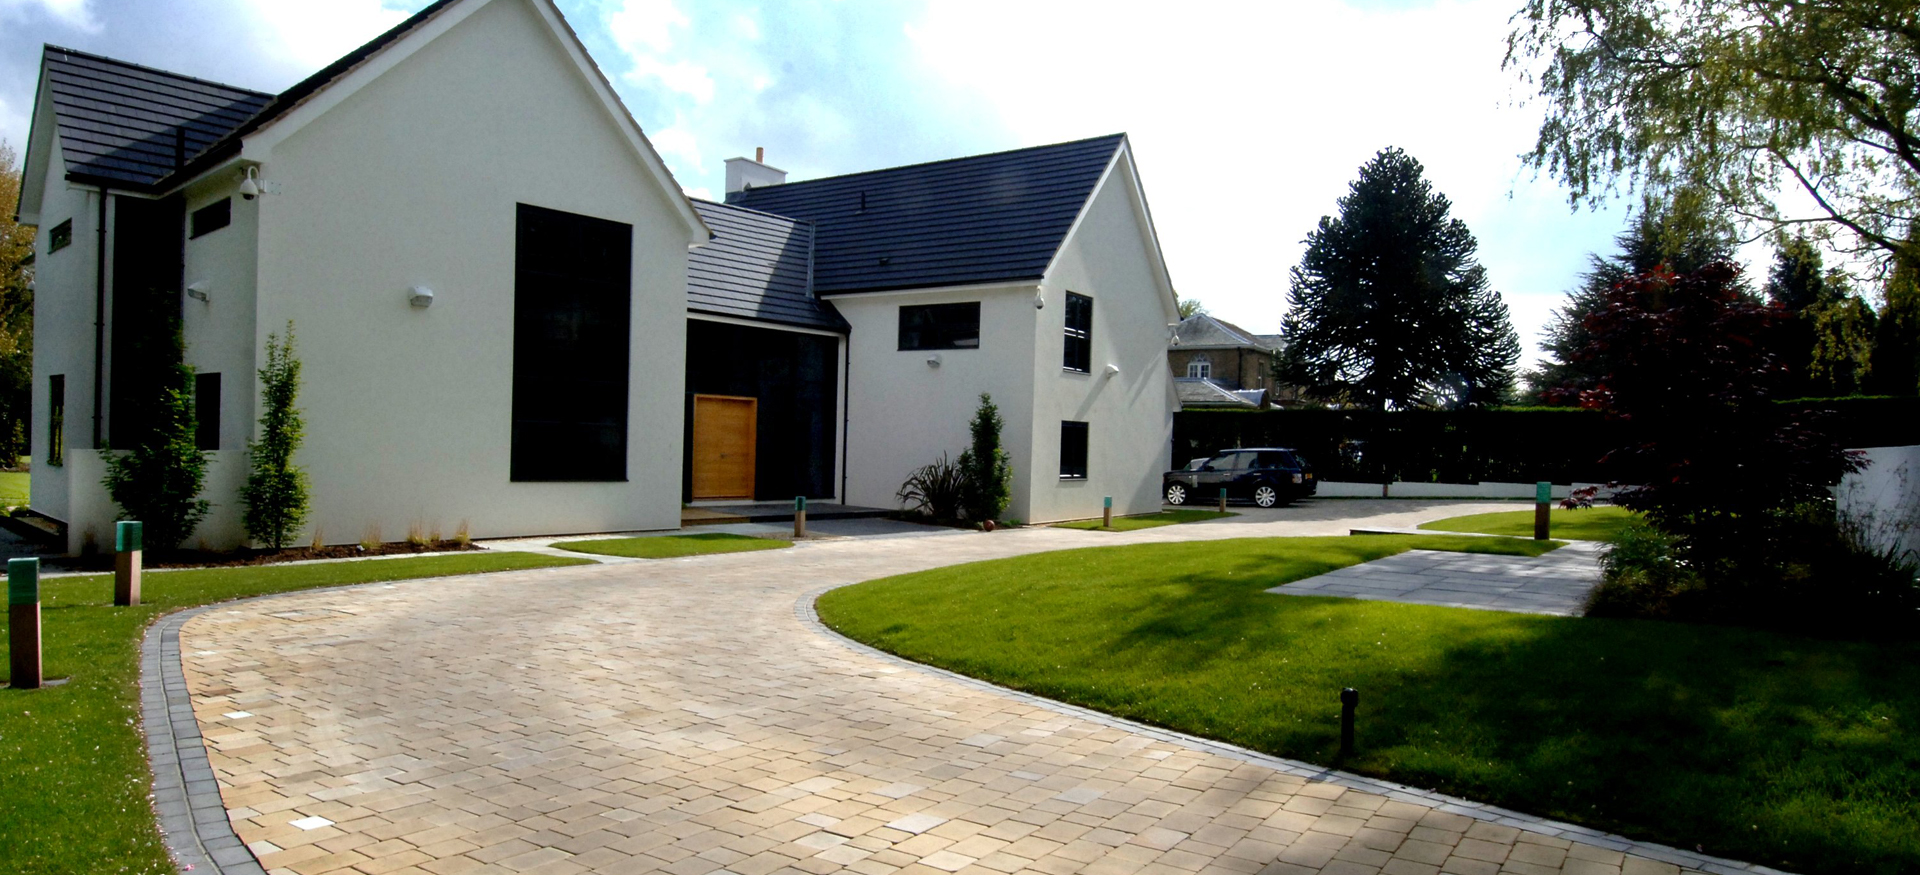 Why you Should Leave Driveways to the Professionals